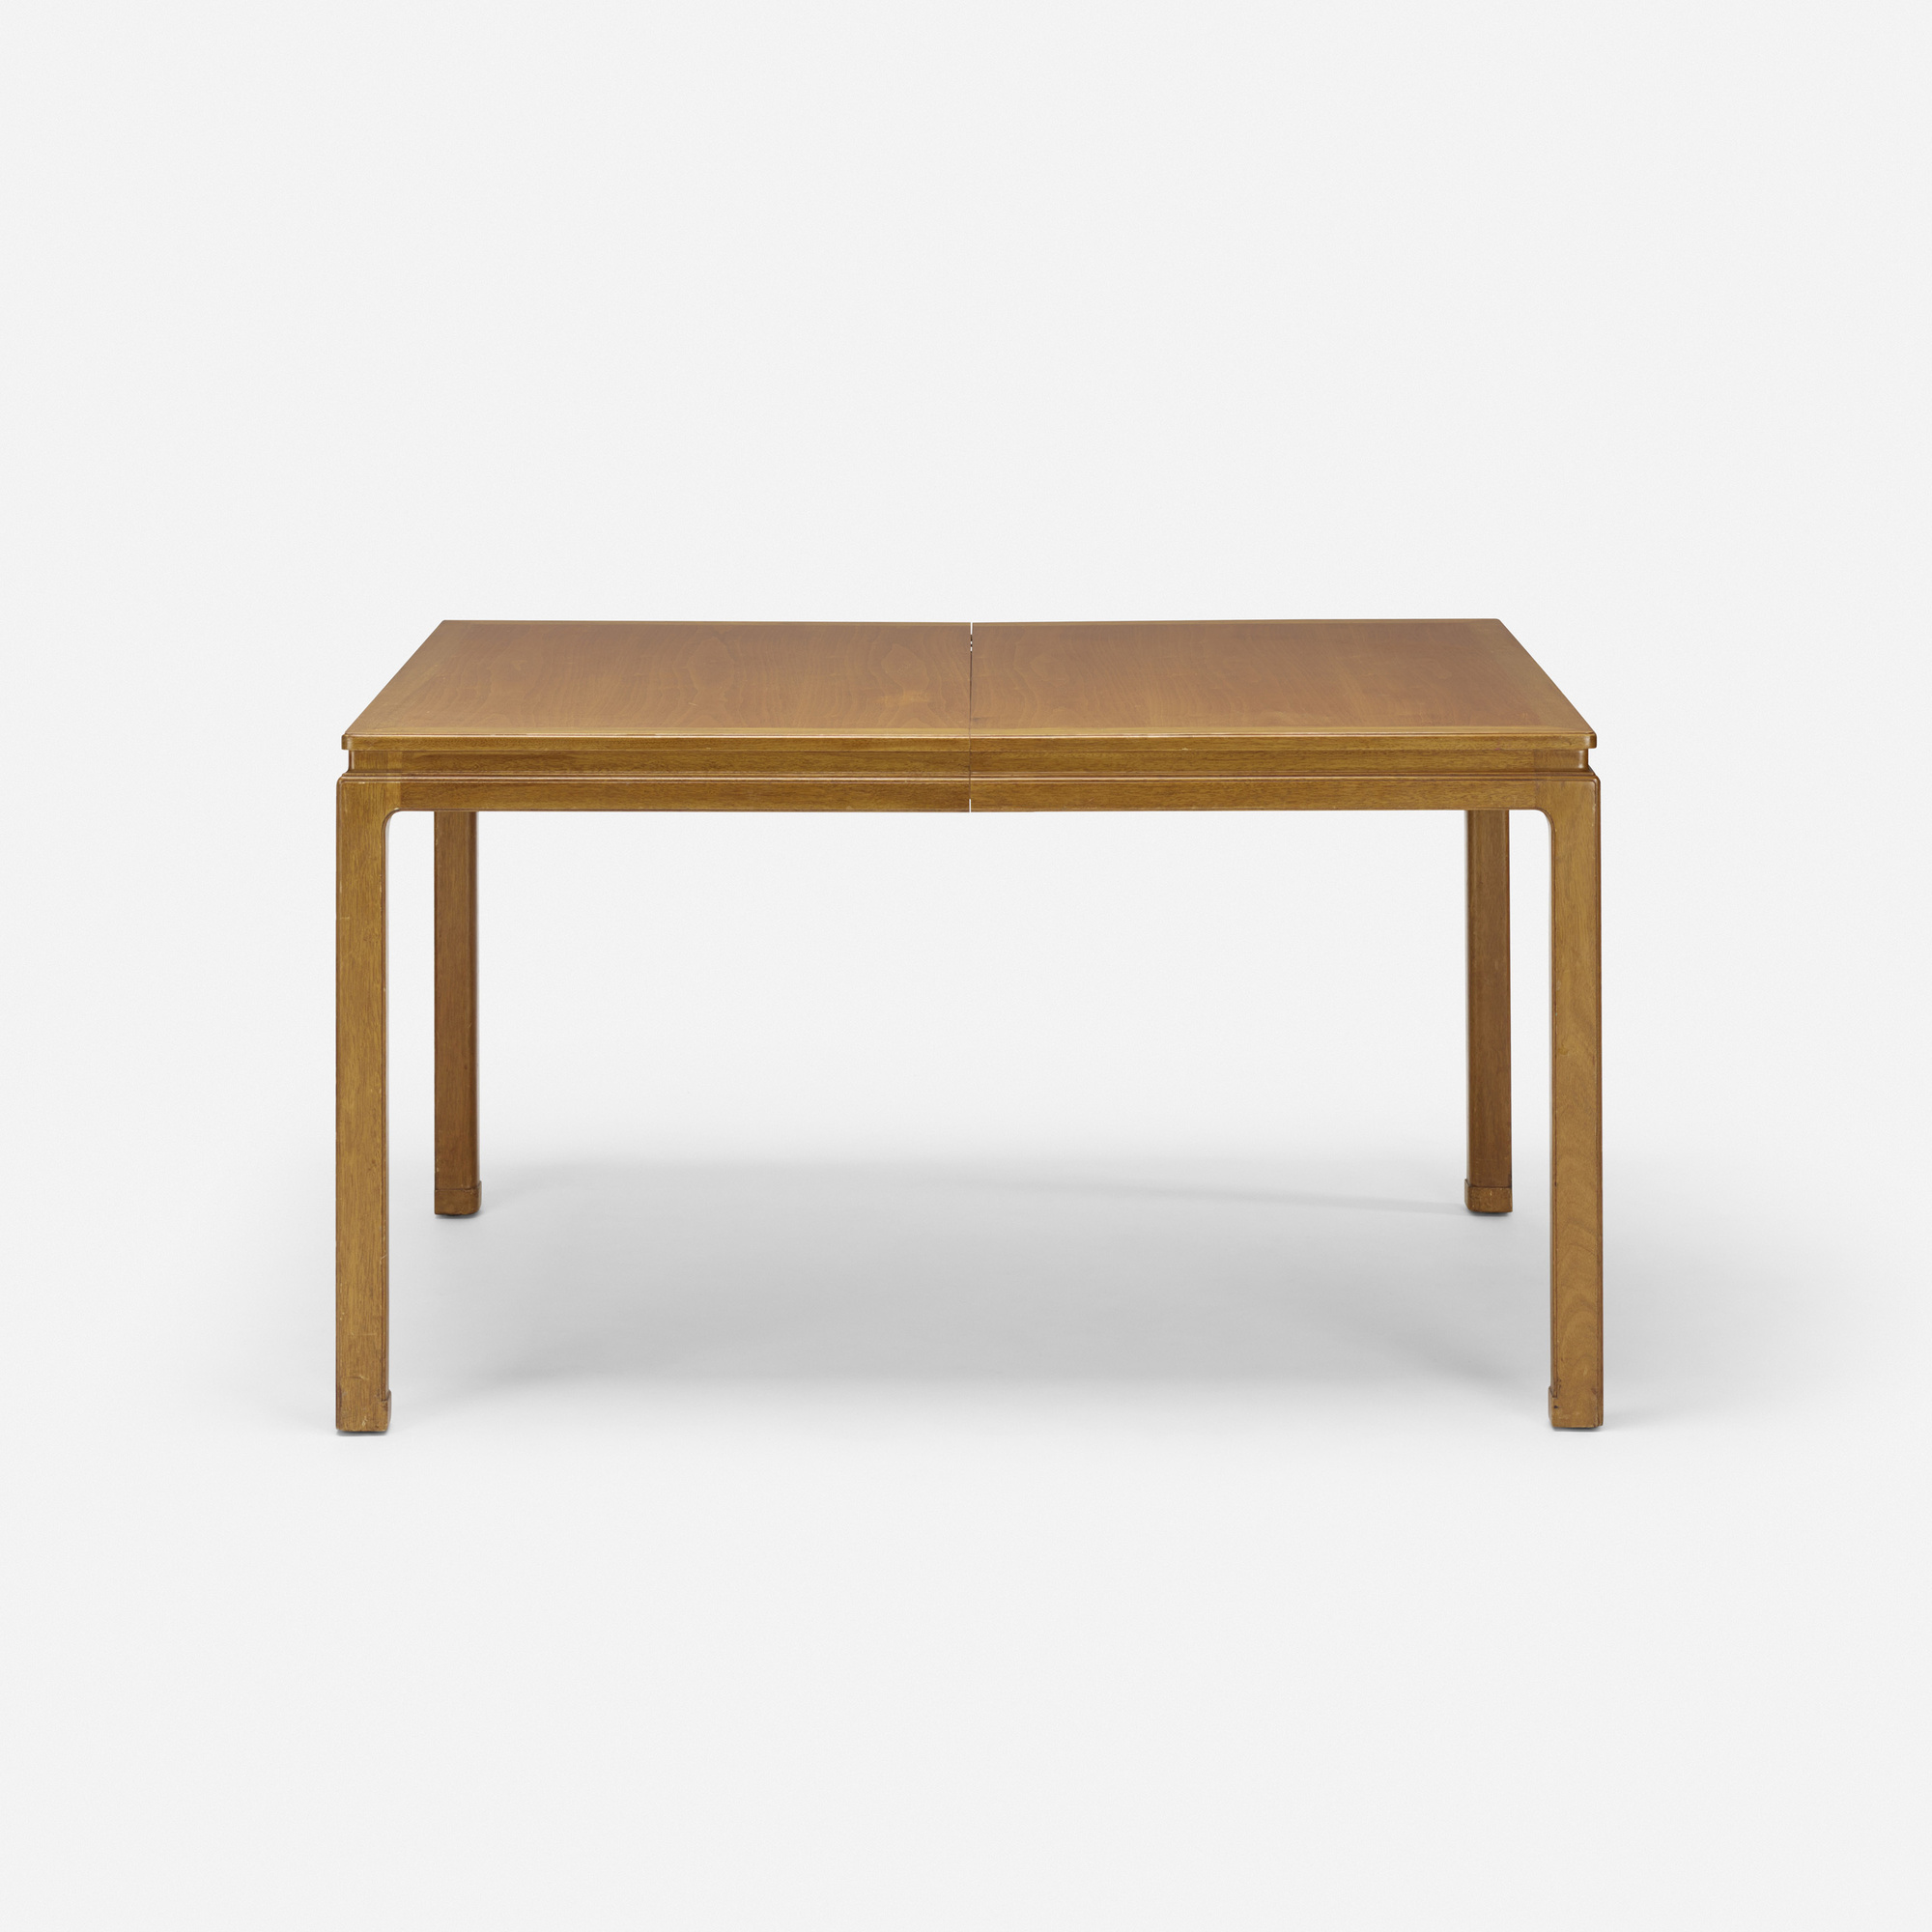 808: Edward Wormley / dining table (1 of 3)